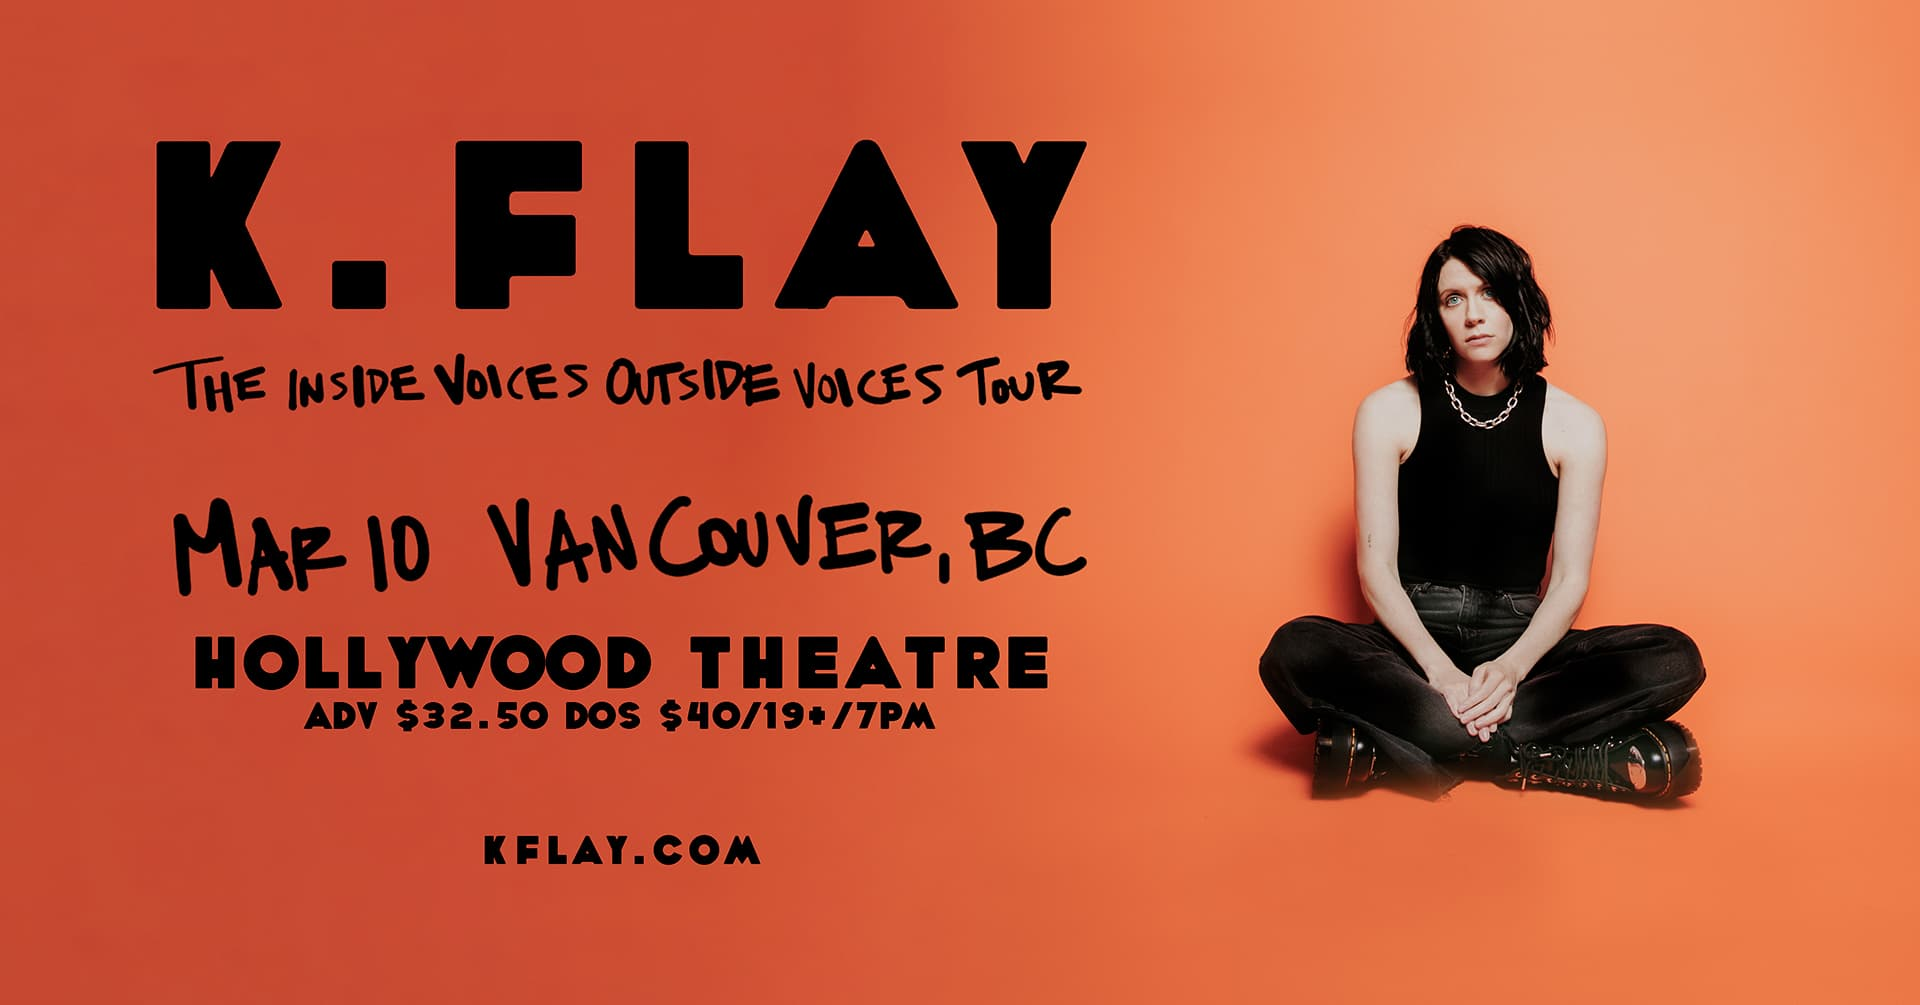 K.FLAY - The Inside Voices Outside Voices Tour